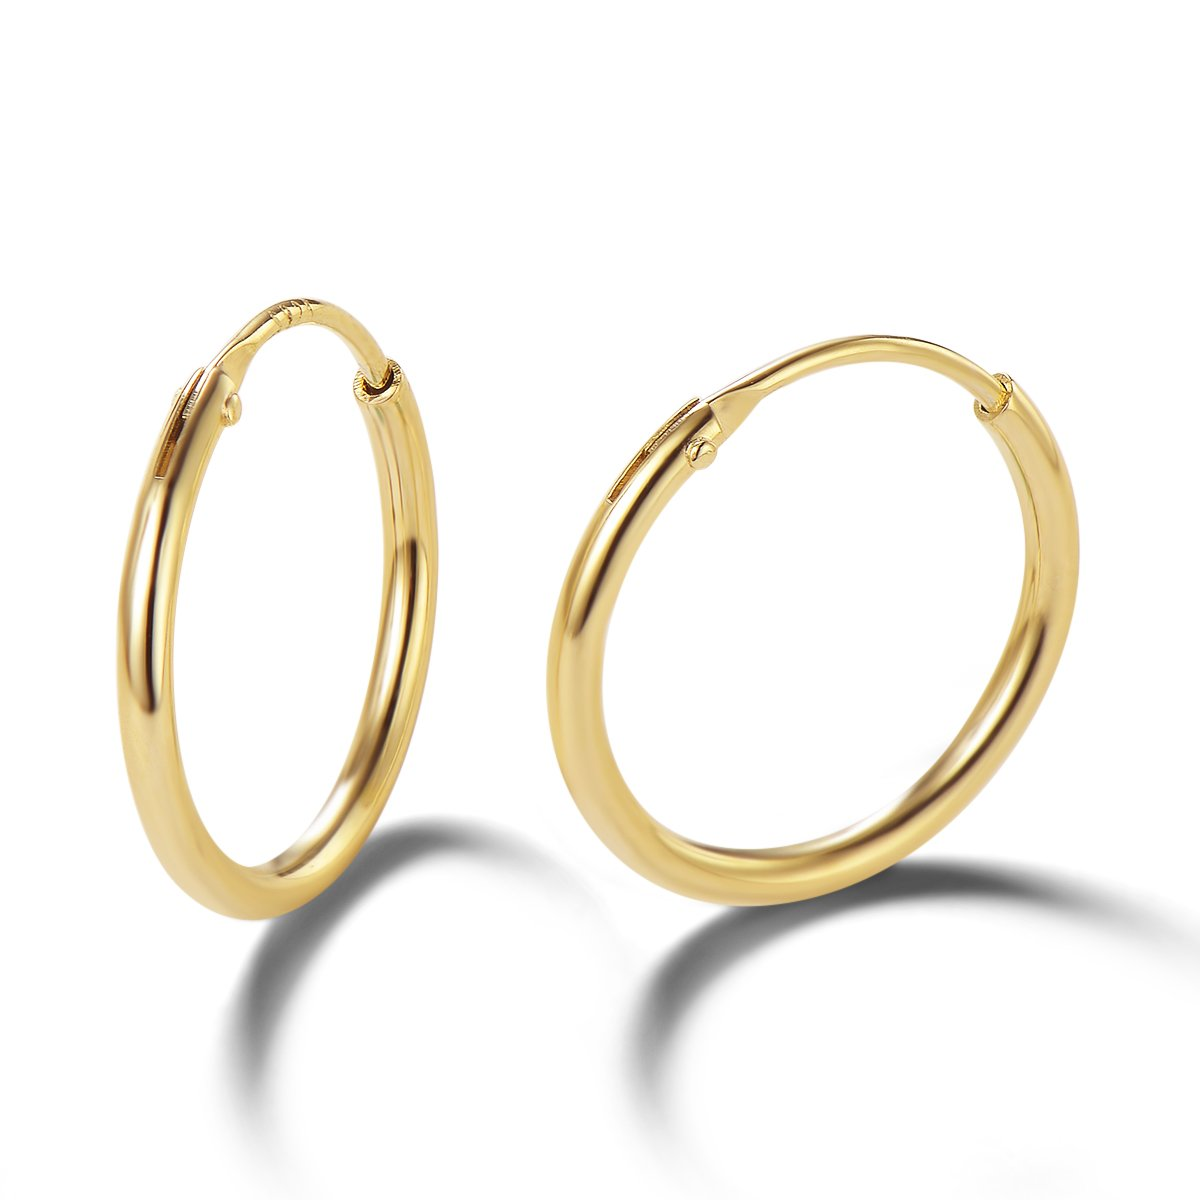 Carleen 14K Yellow Gold Plated 925 Sterling Silver Dainty Endless Hoop Earrings for Women Girls (13mm) by Carleen (Image #4)